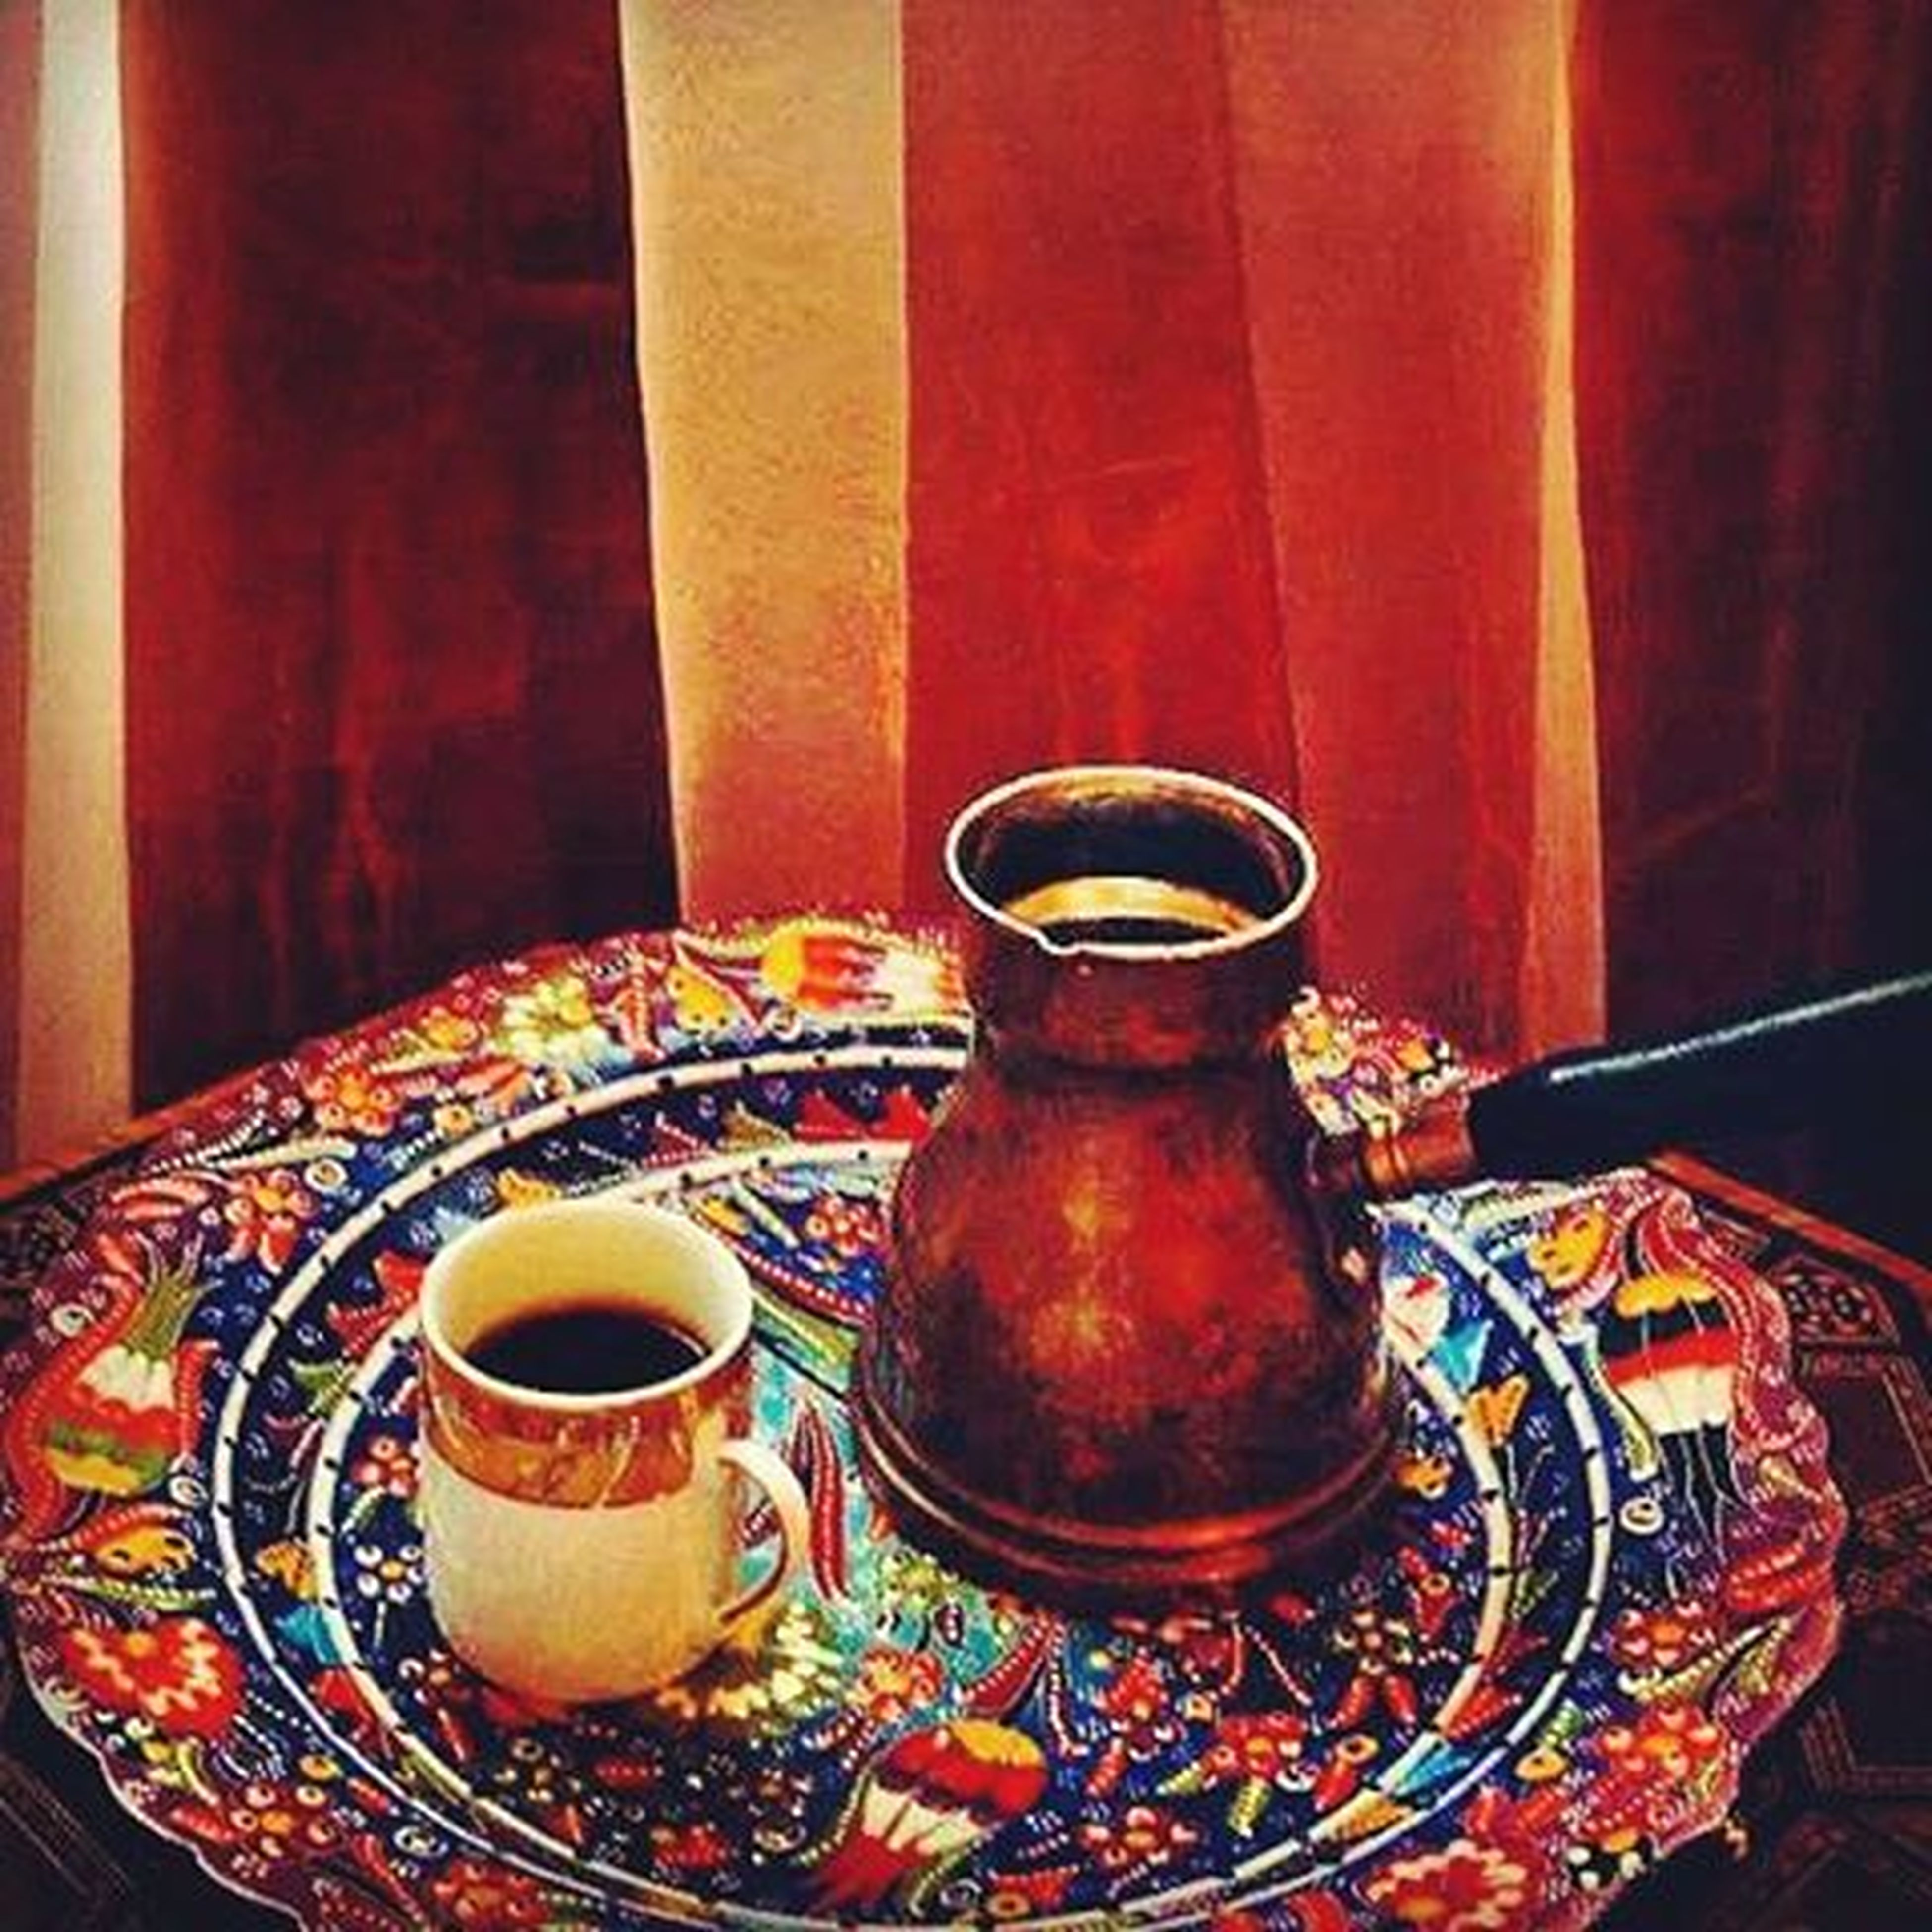 Coffee_mania Arabian_coffee Addict Egypt